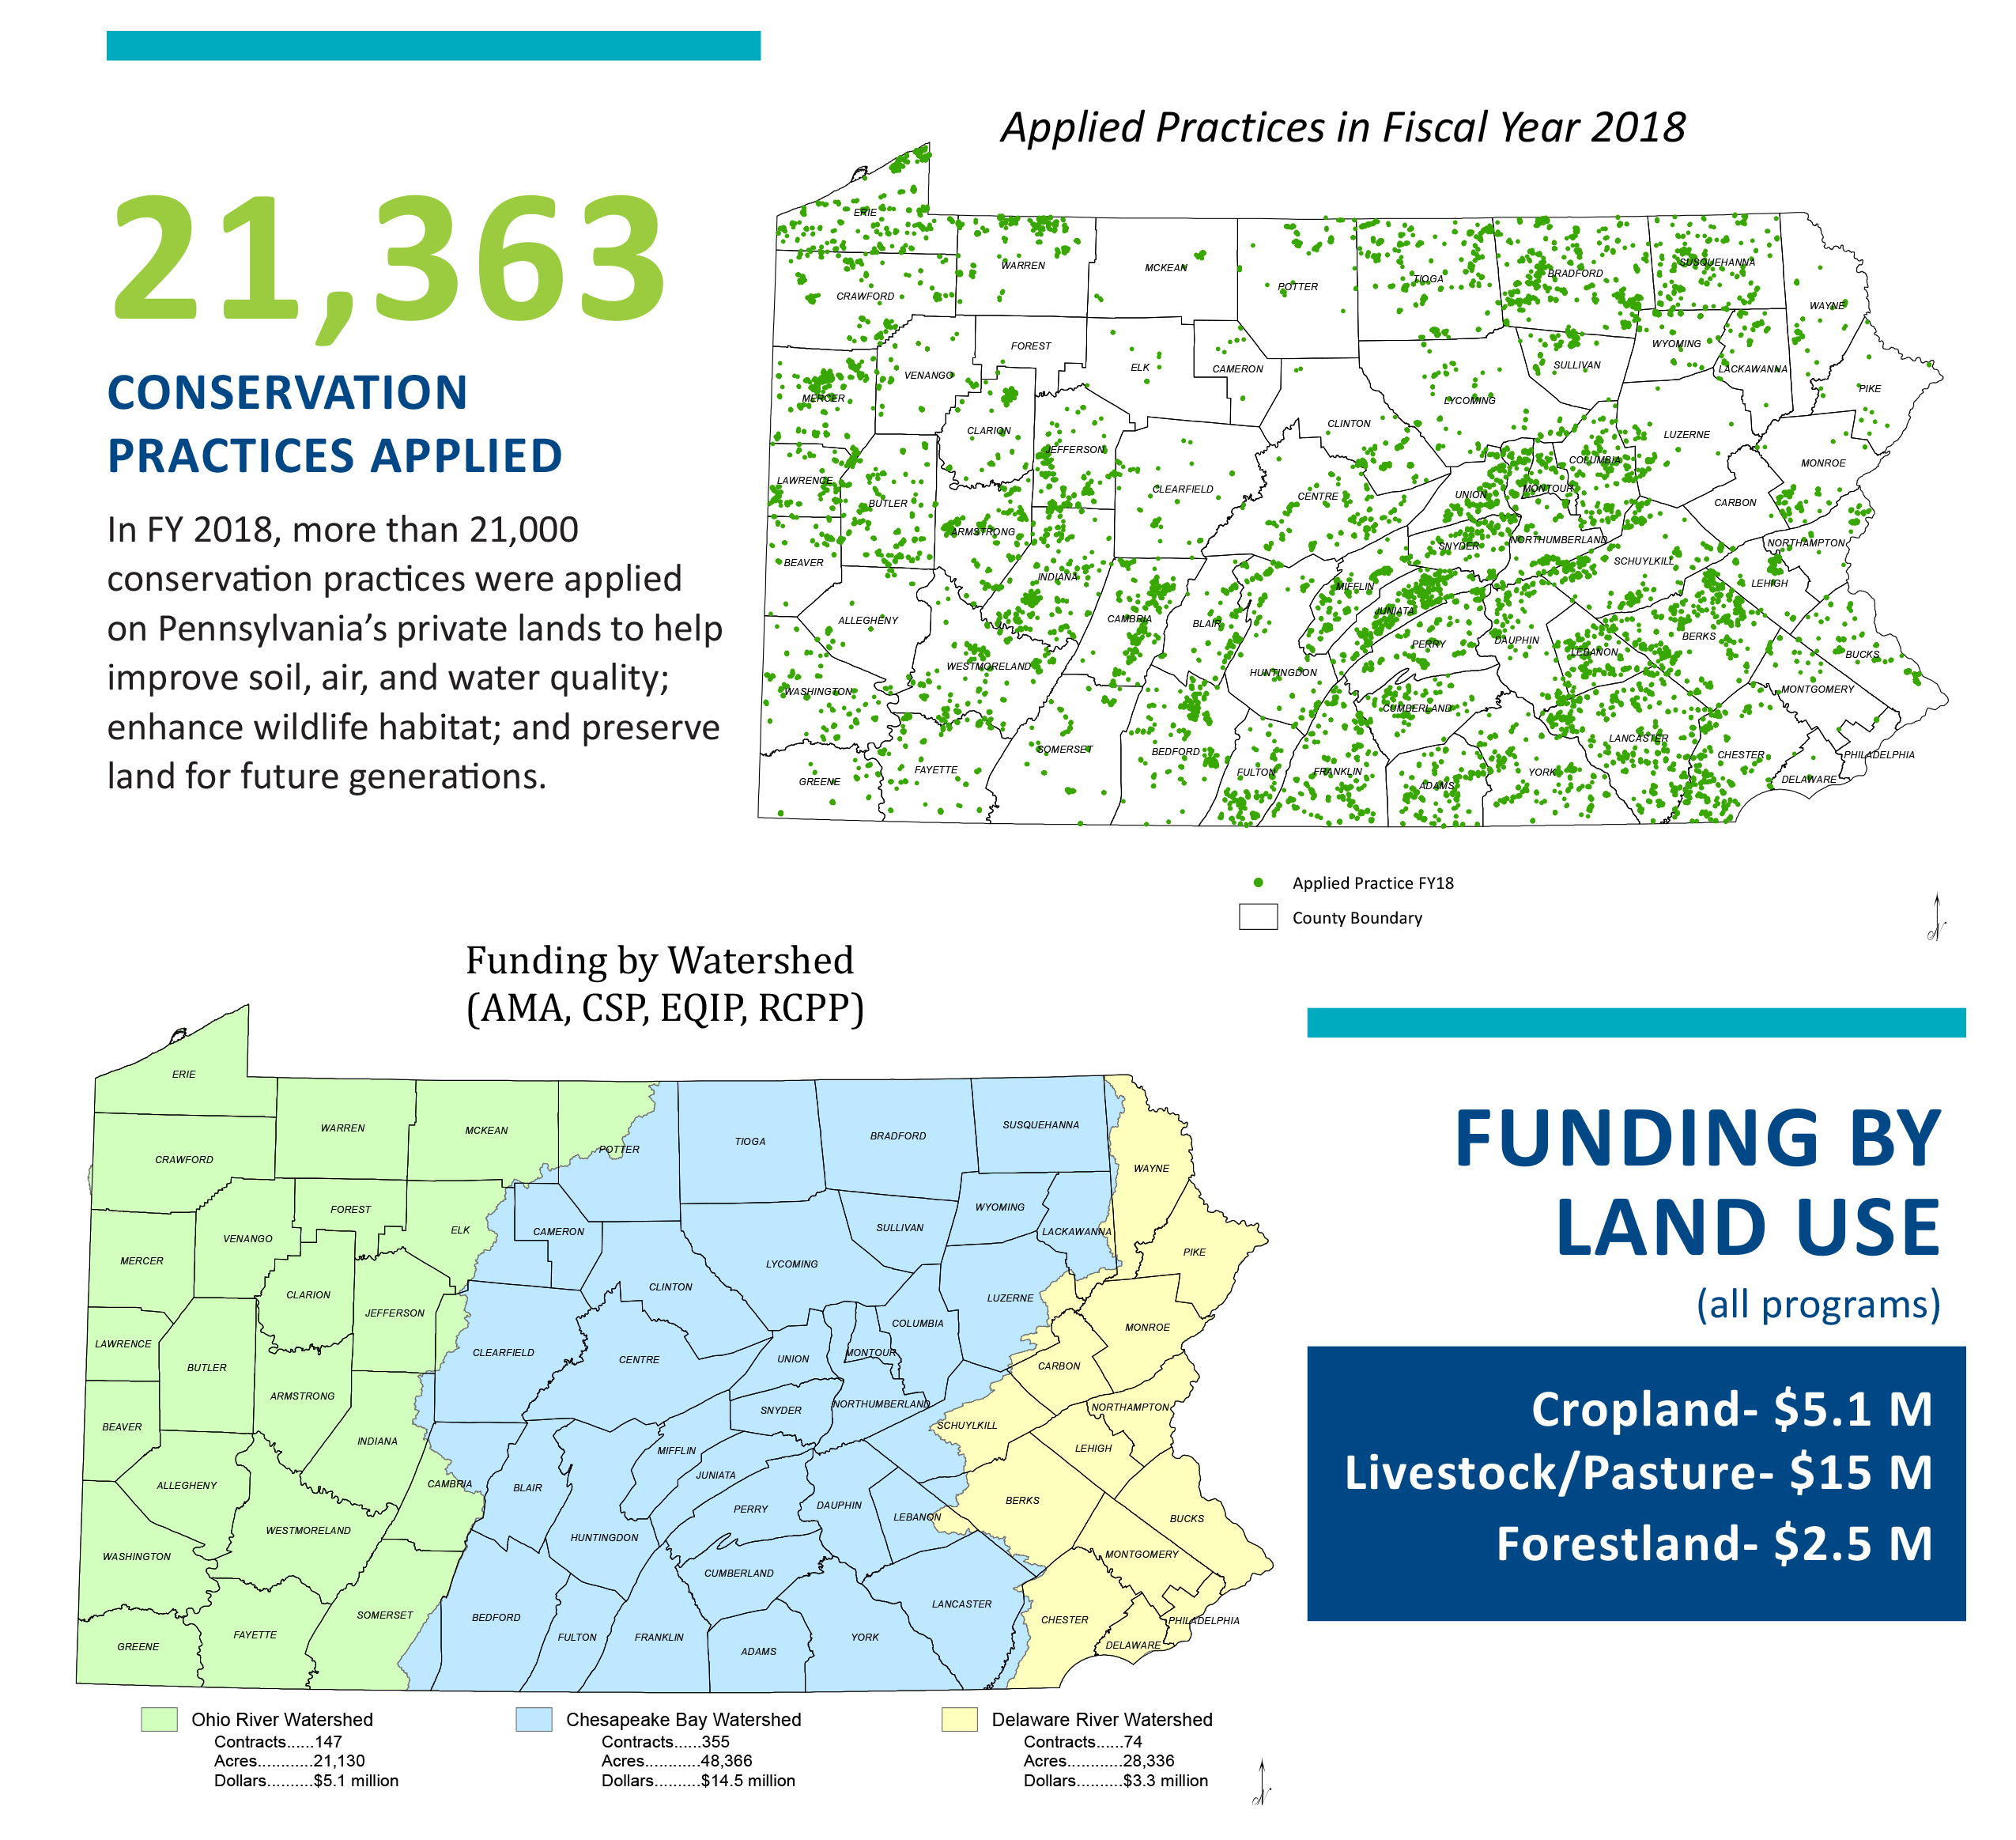 IN FY 2018, PA NRCS applied 21, 363 conservation practices on PA's private lands.